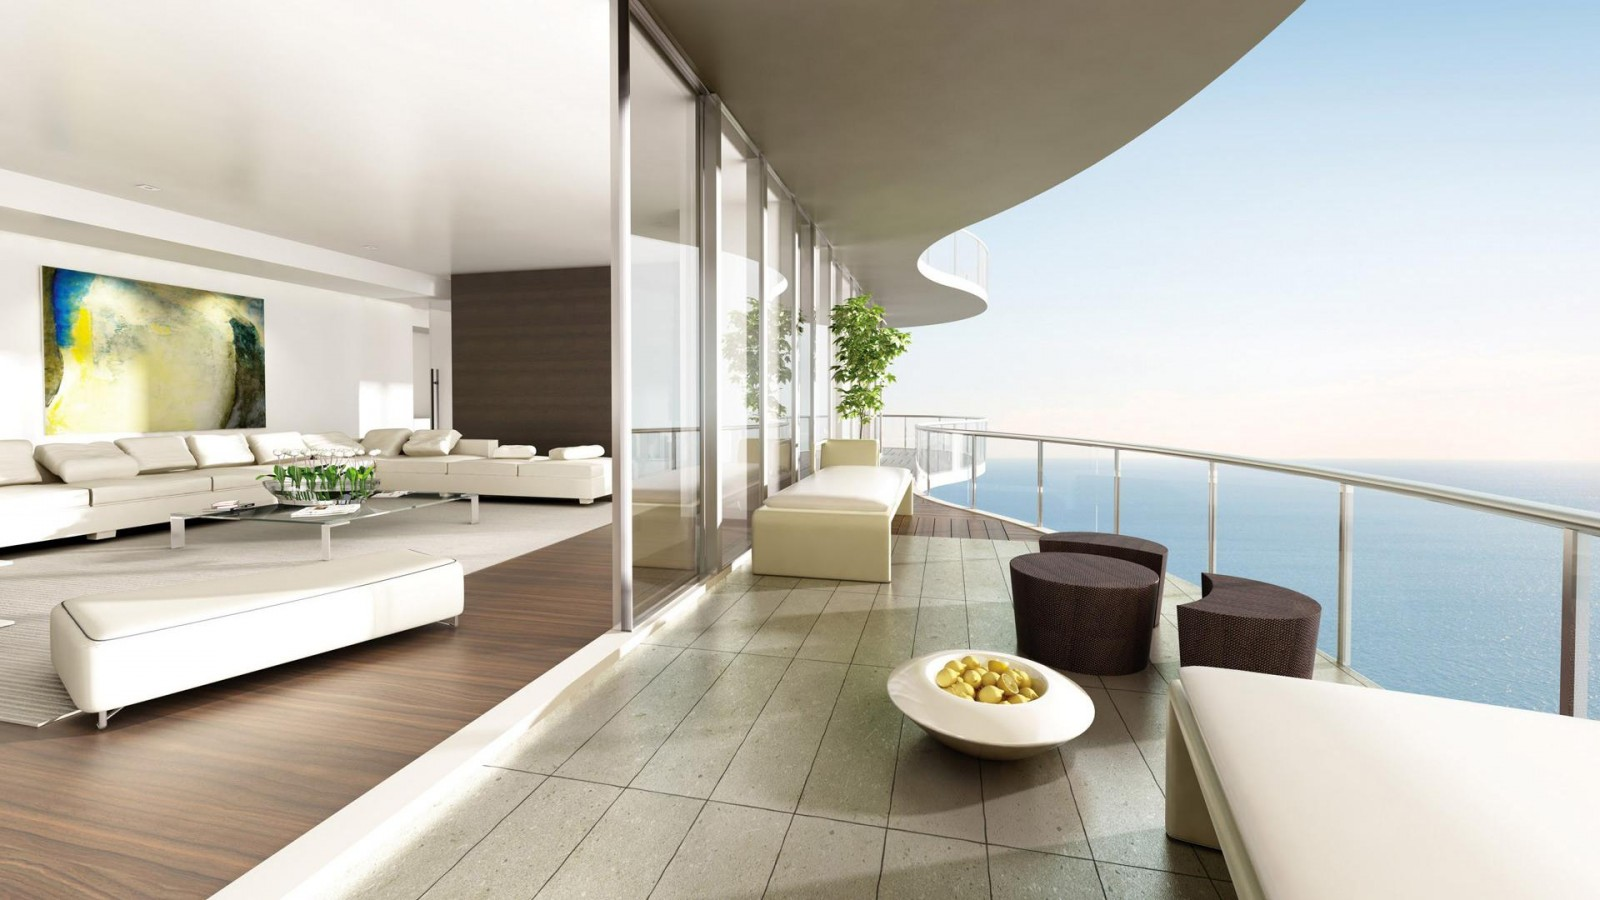 Seaview-architecture_www.LuxuryWallpapers.net_-e1397480670765